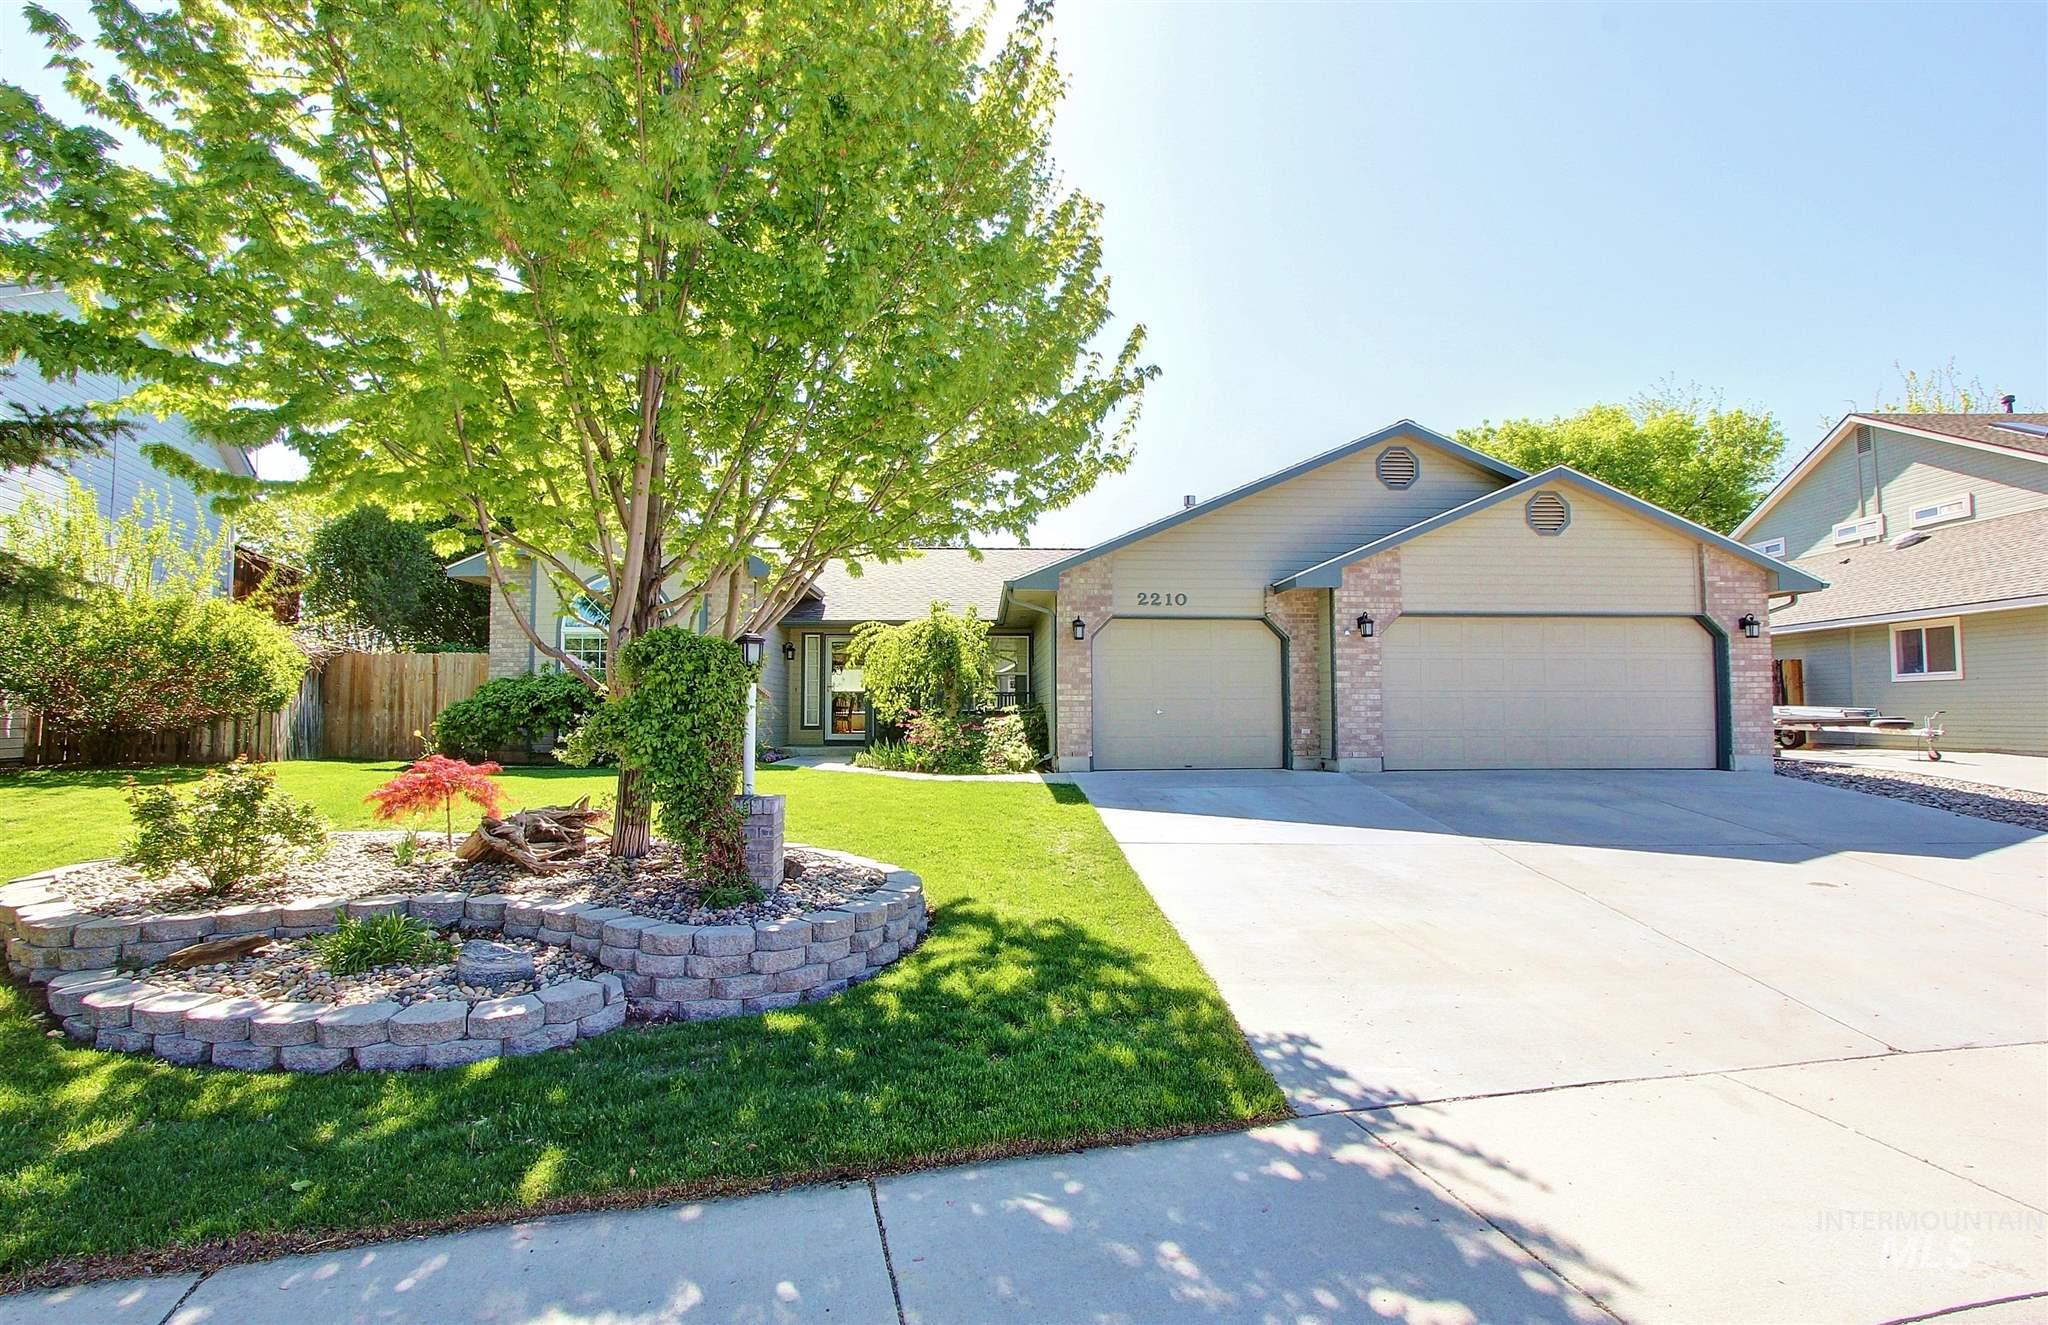 2210 N Glennfield Way Property Photo - Meridian, ID real estate listing